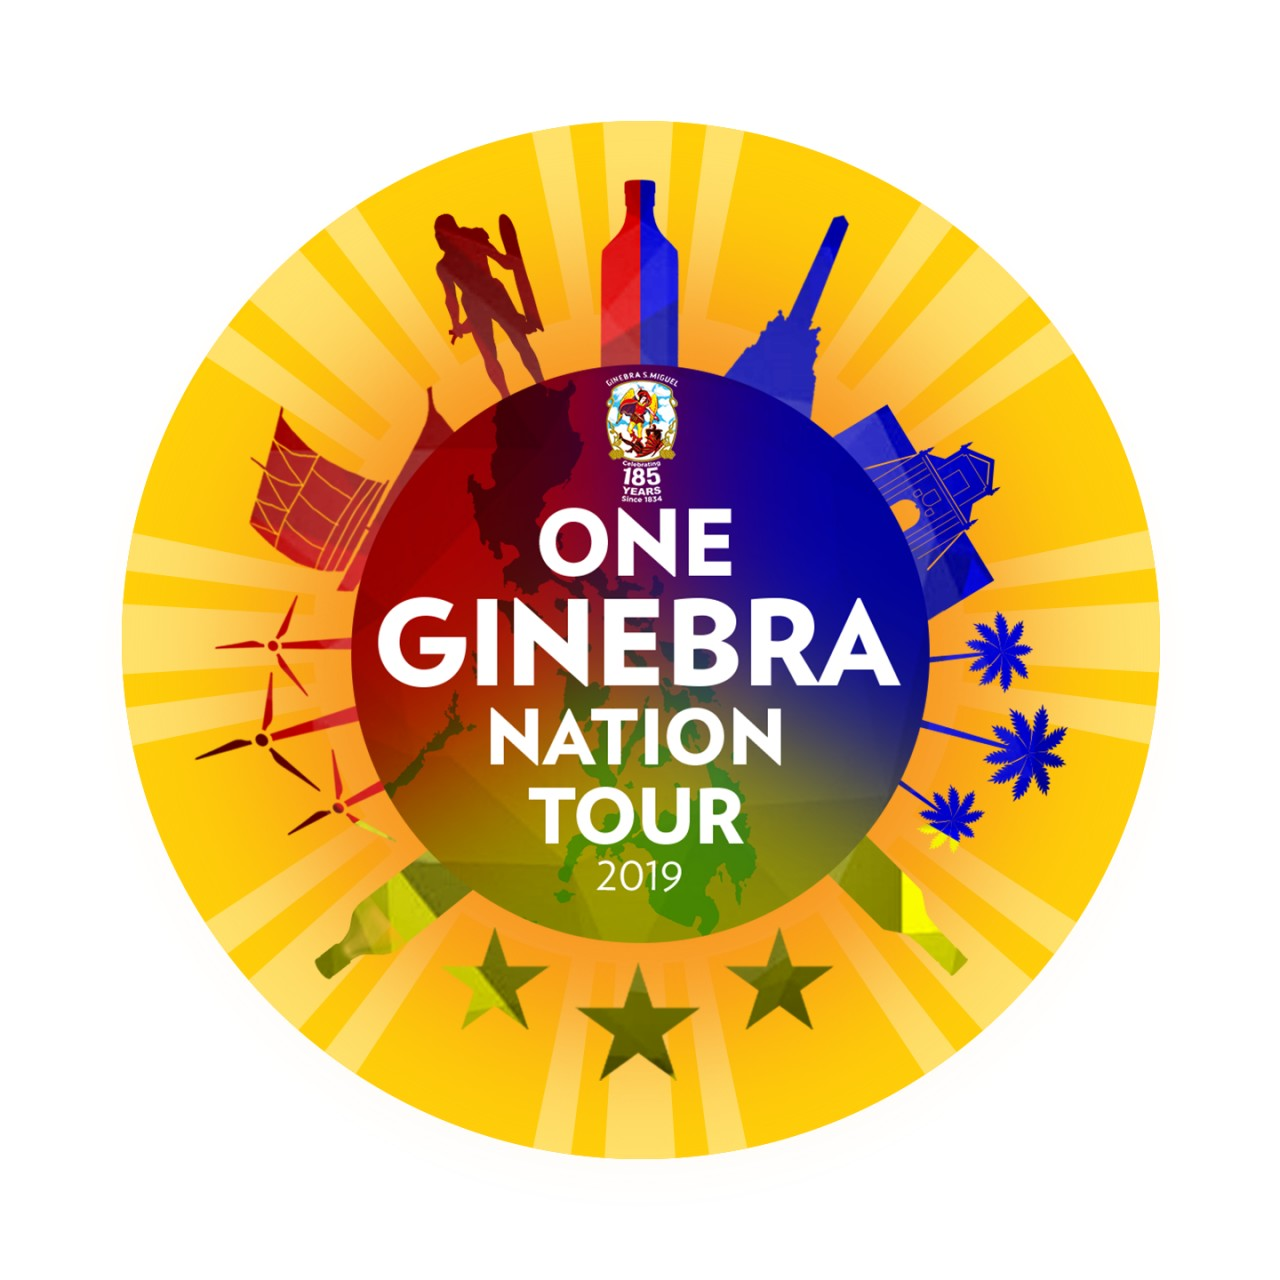 One Ginebra Nation: A Celebration 185 Years in the Making